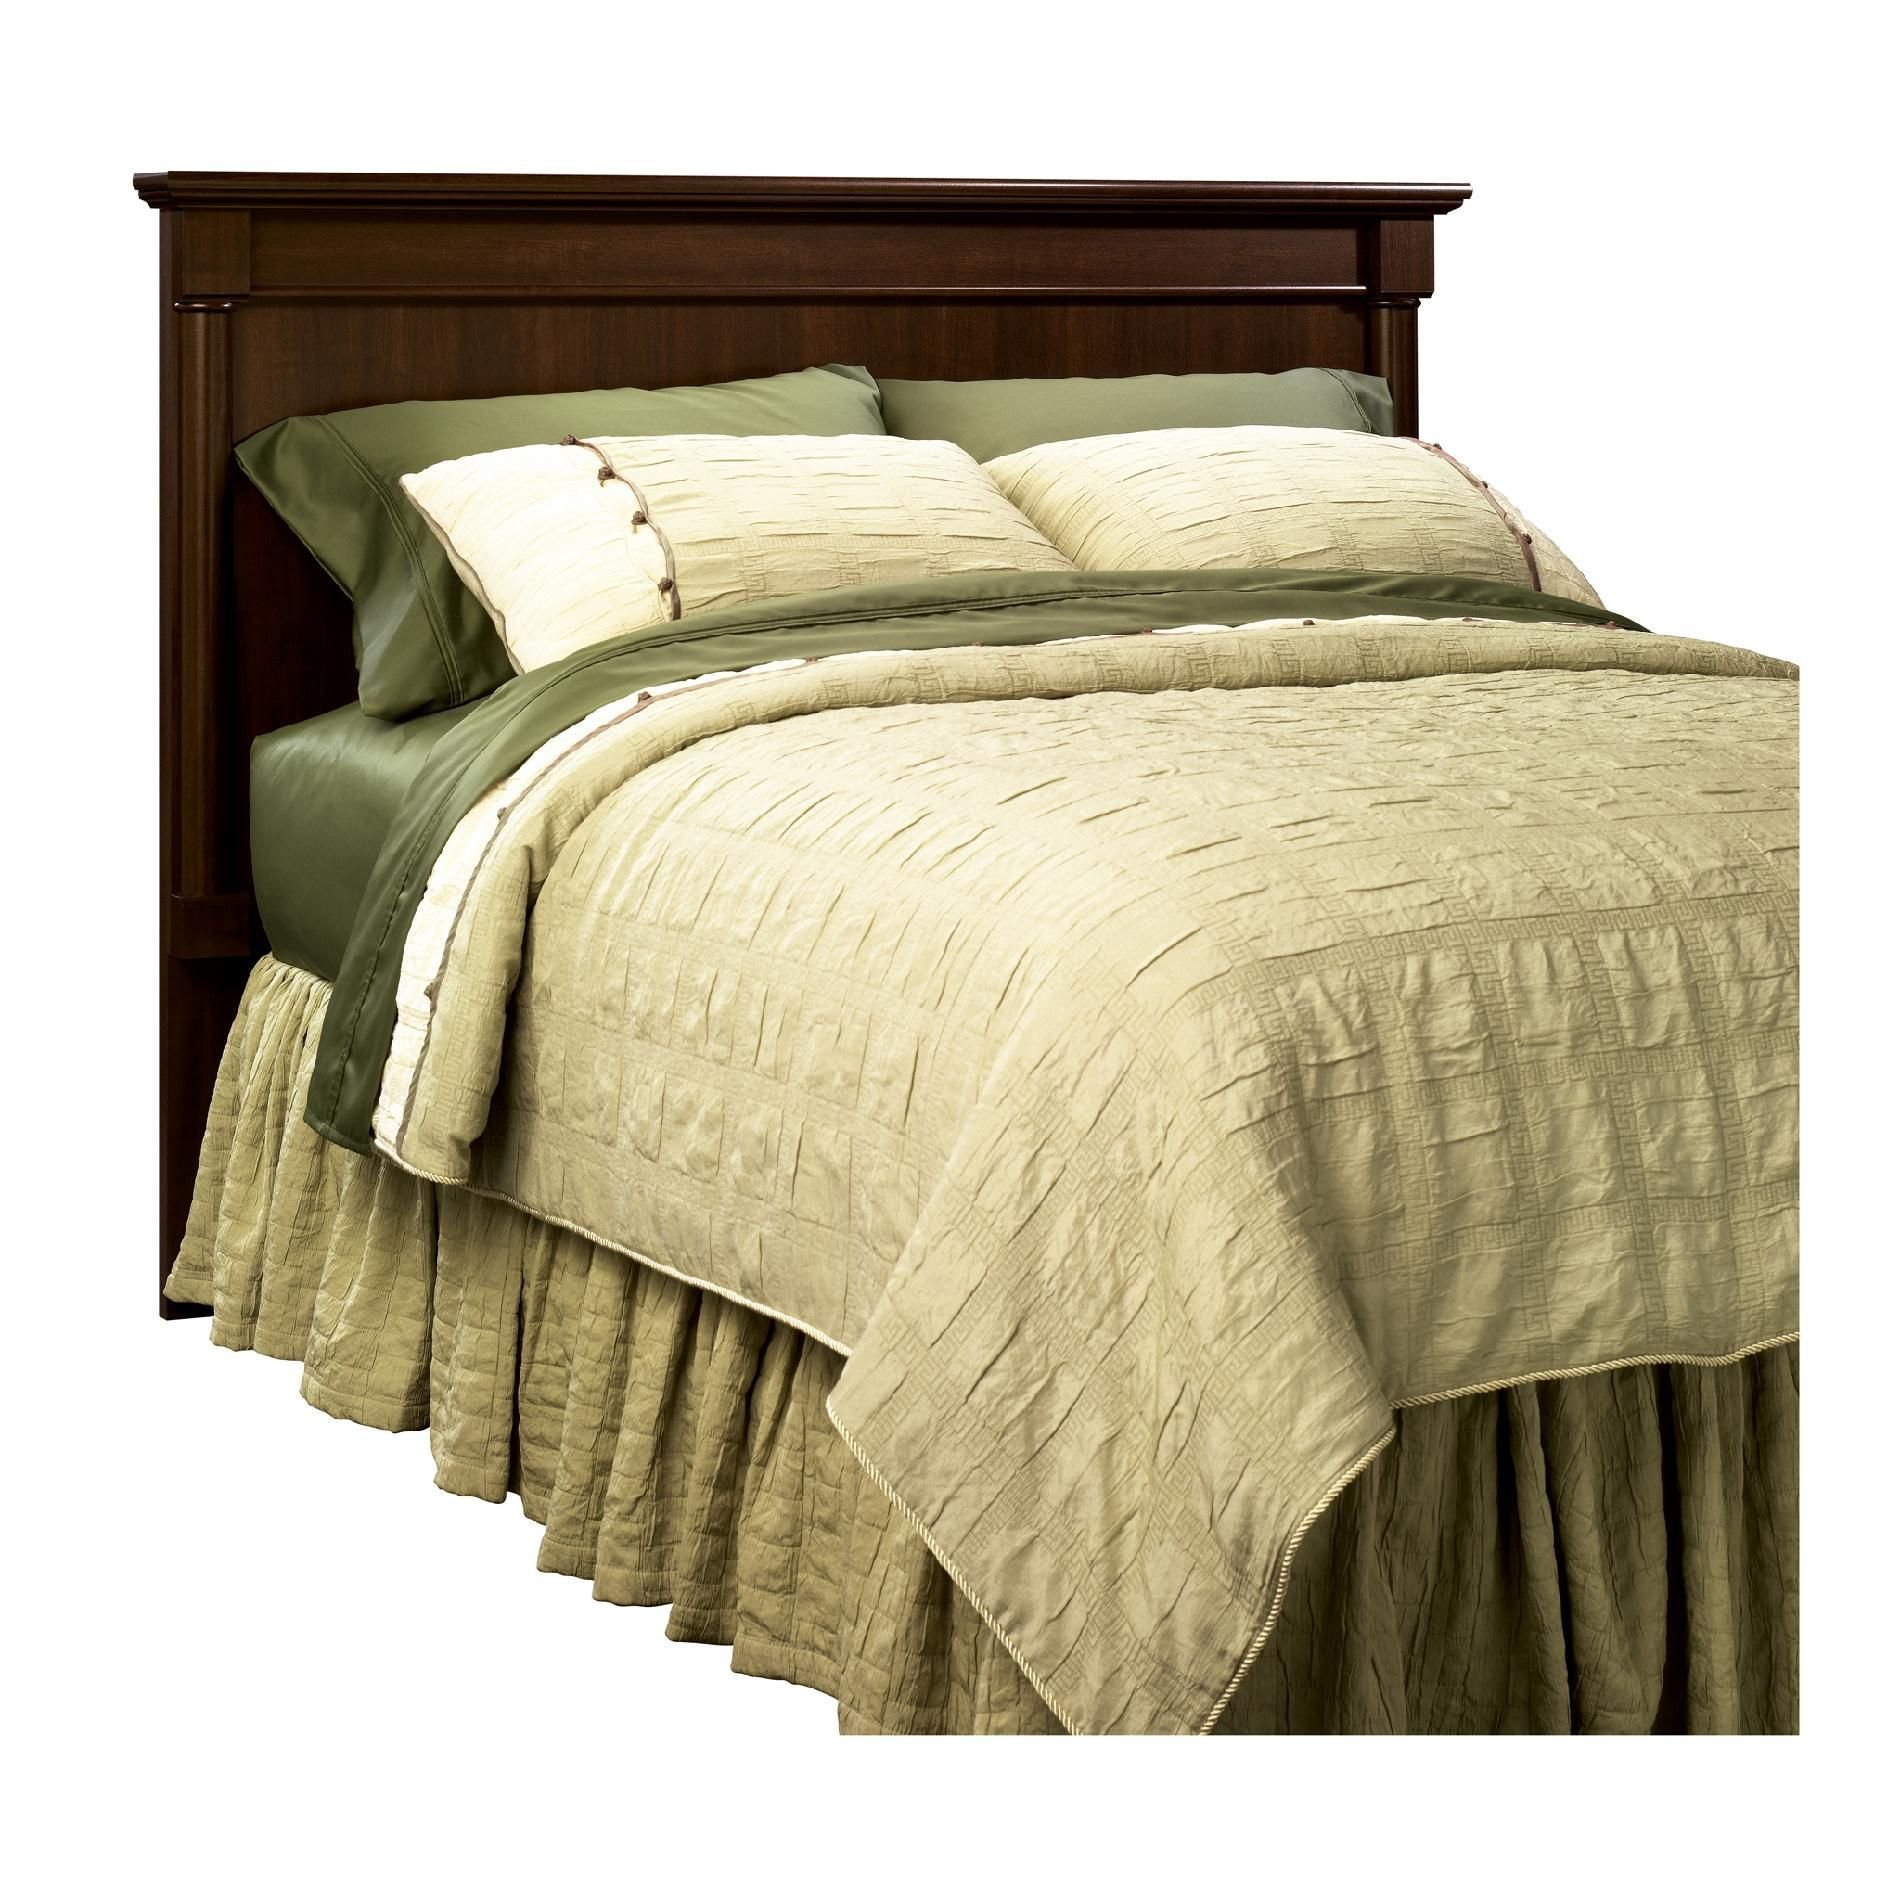 Best Cheap Bedroom Furniture On Sale Dressers Headboards Bed With Pictures